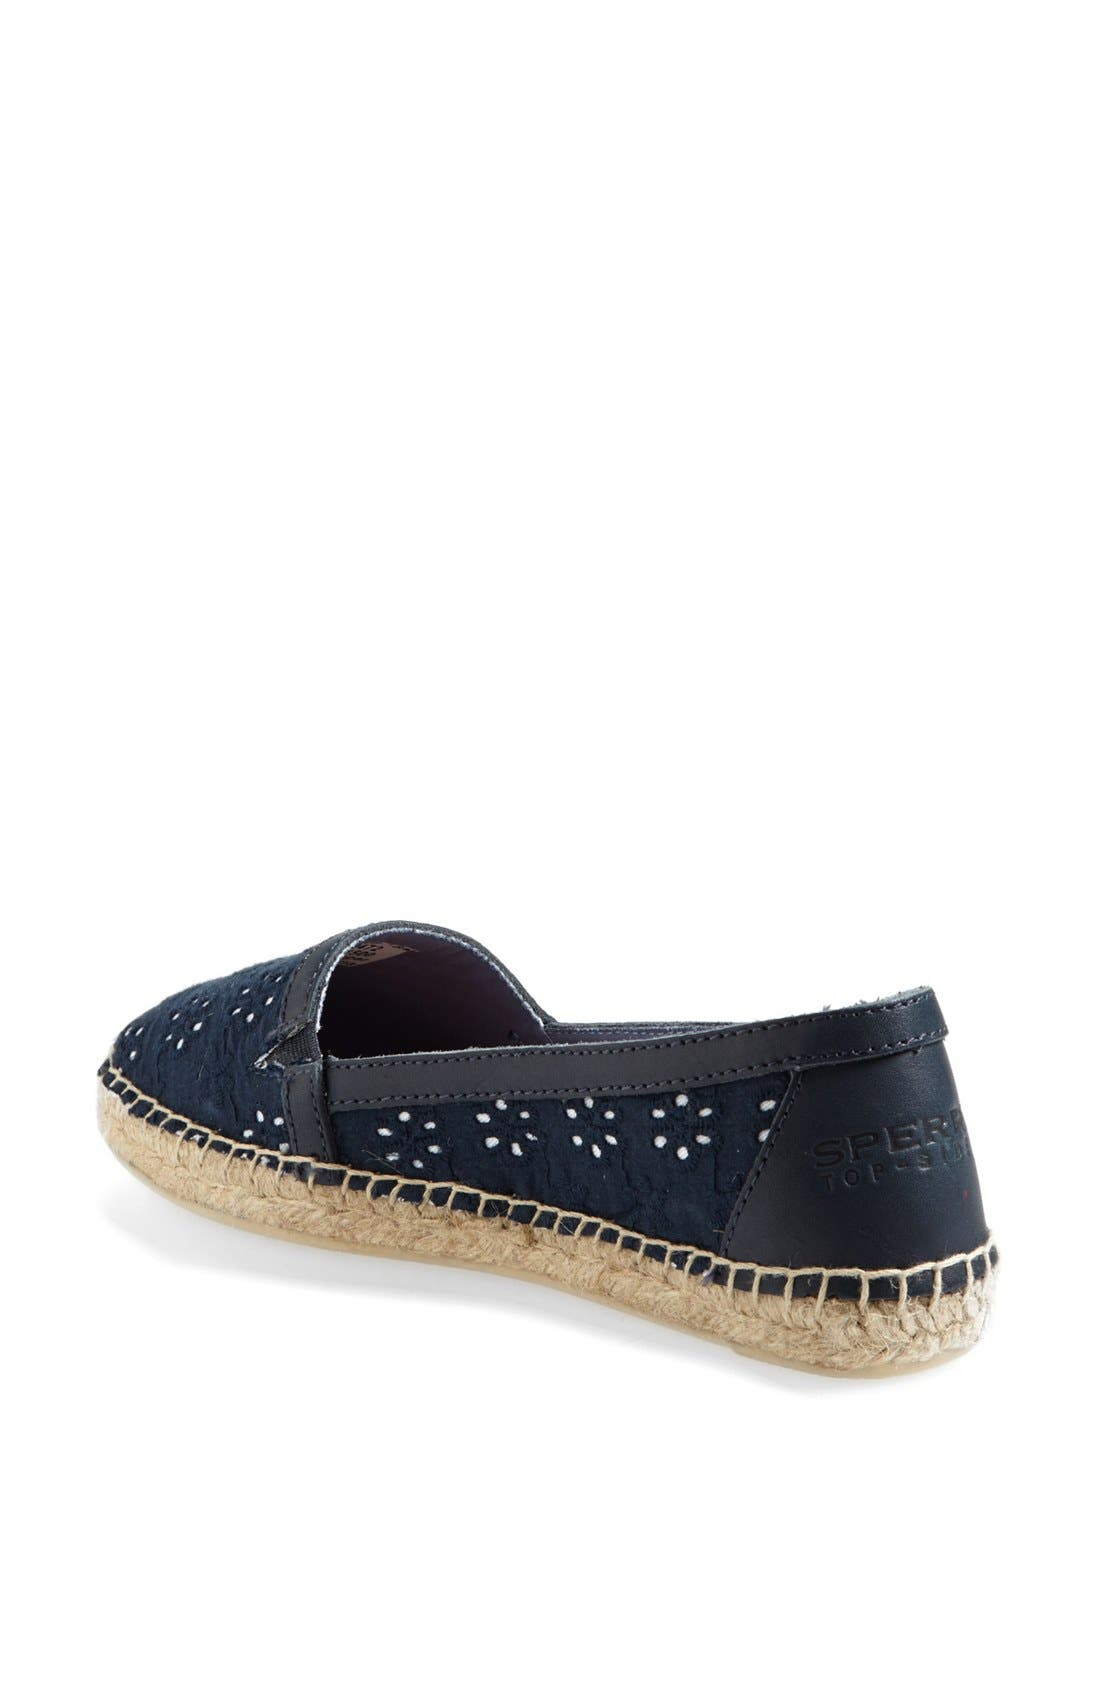 Alternate Image 3  - SPERRY DANICA FLAT